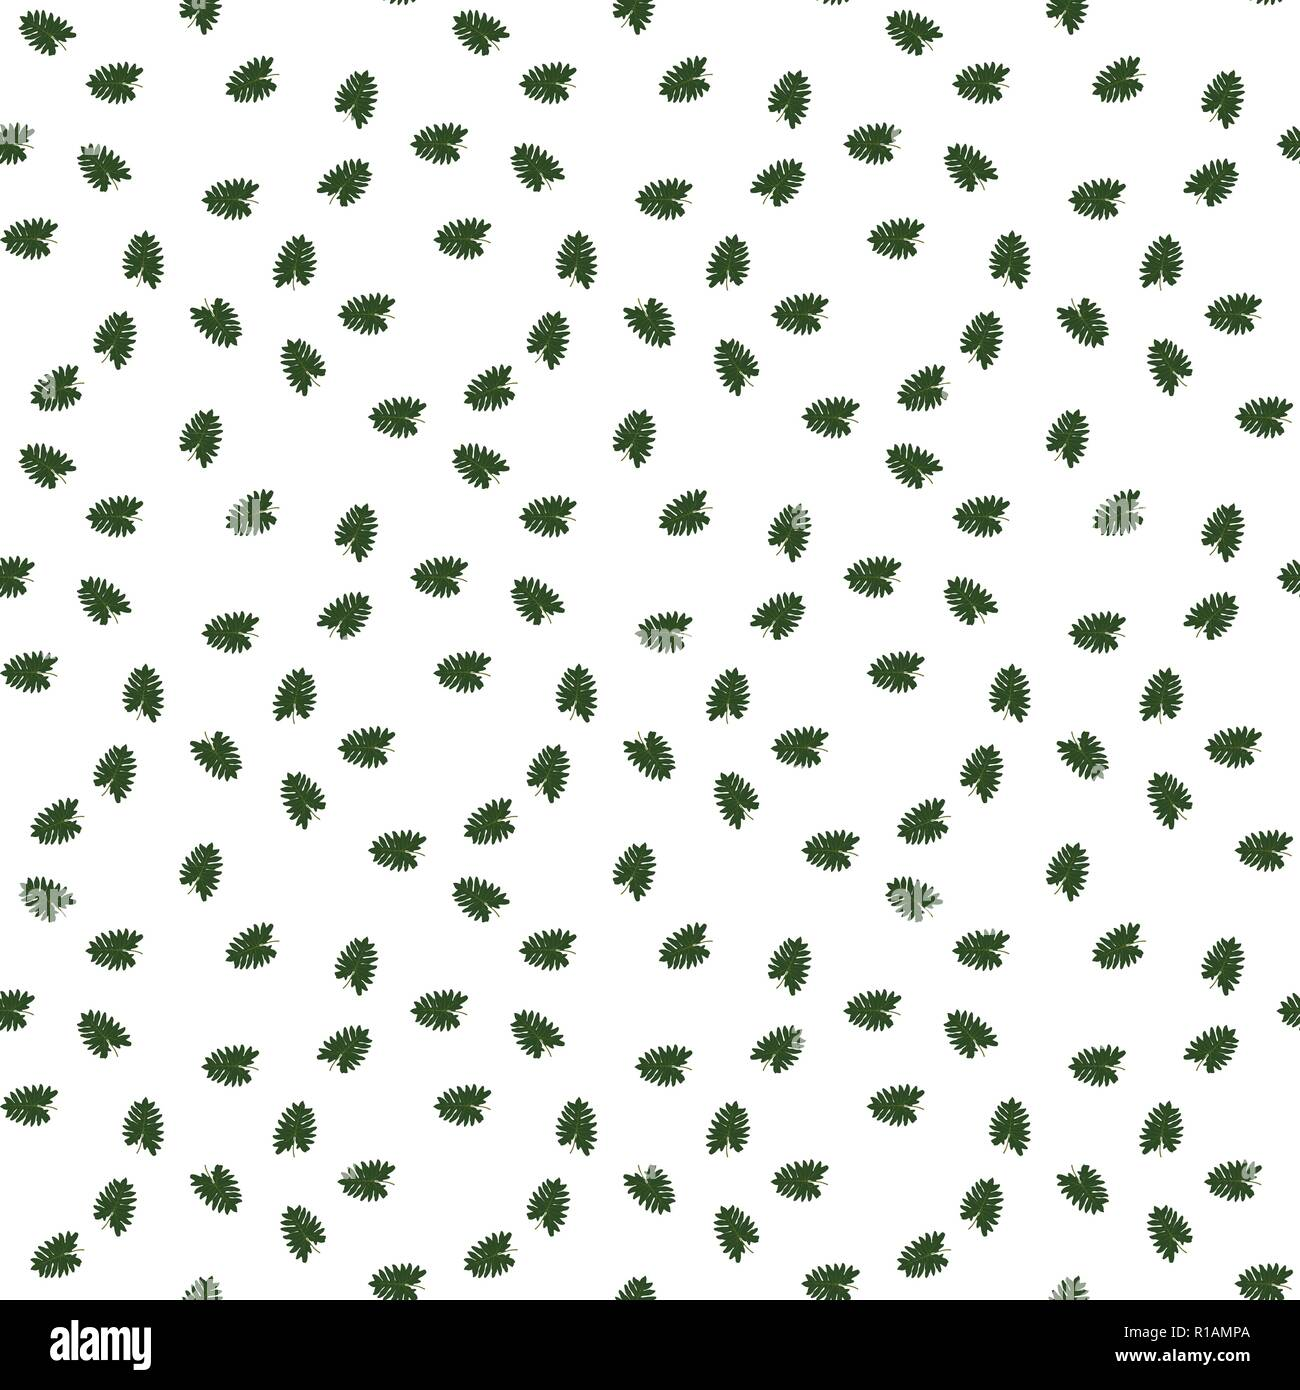 Silhouette Of Leaf Trees On White Background Seamless Pattern Vector Illustration